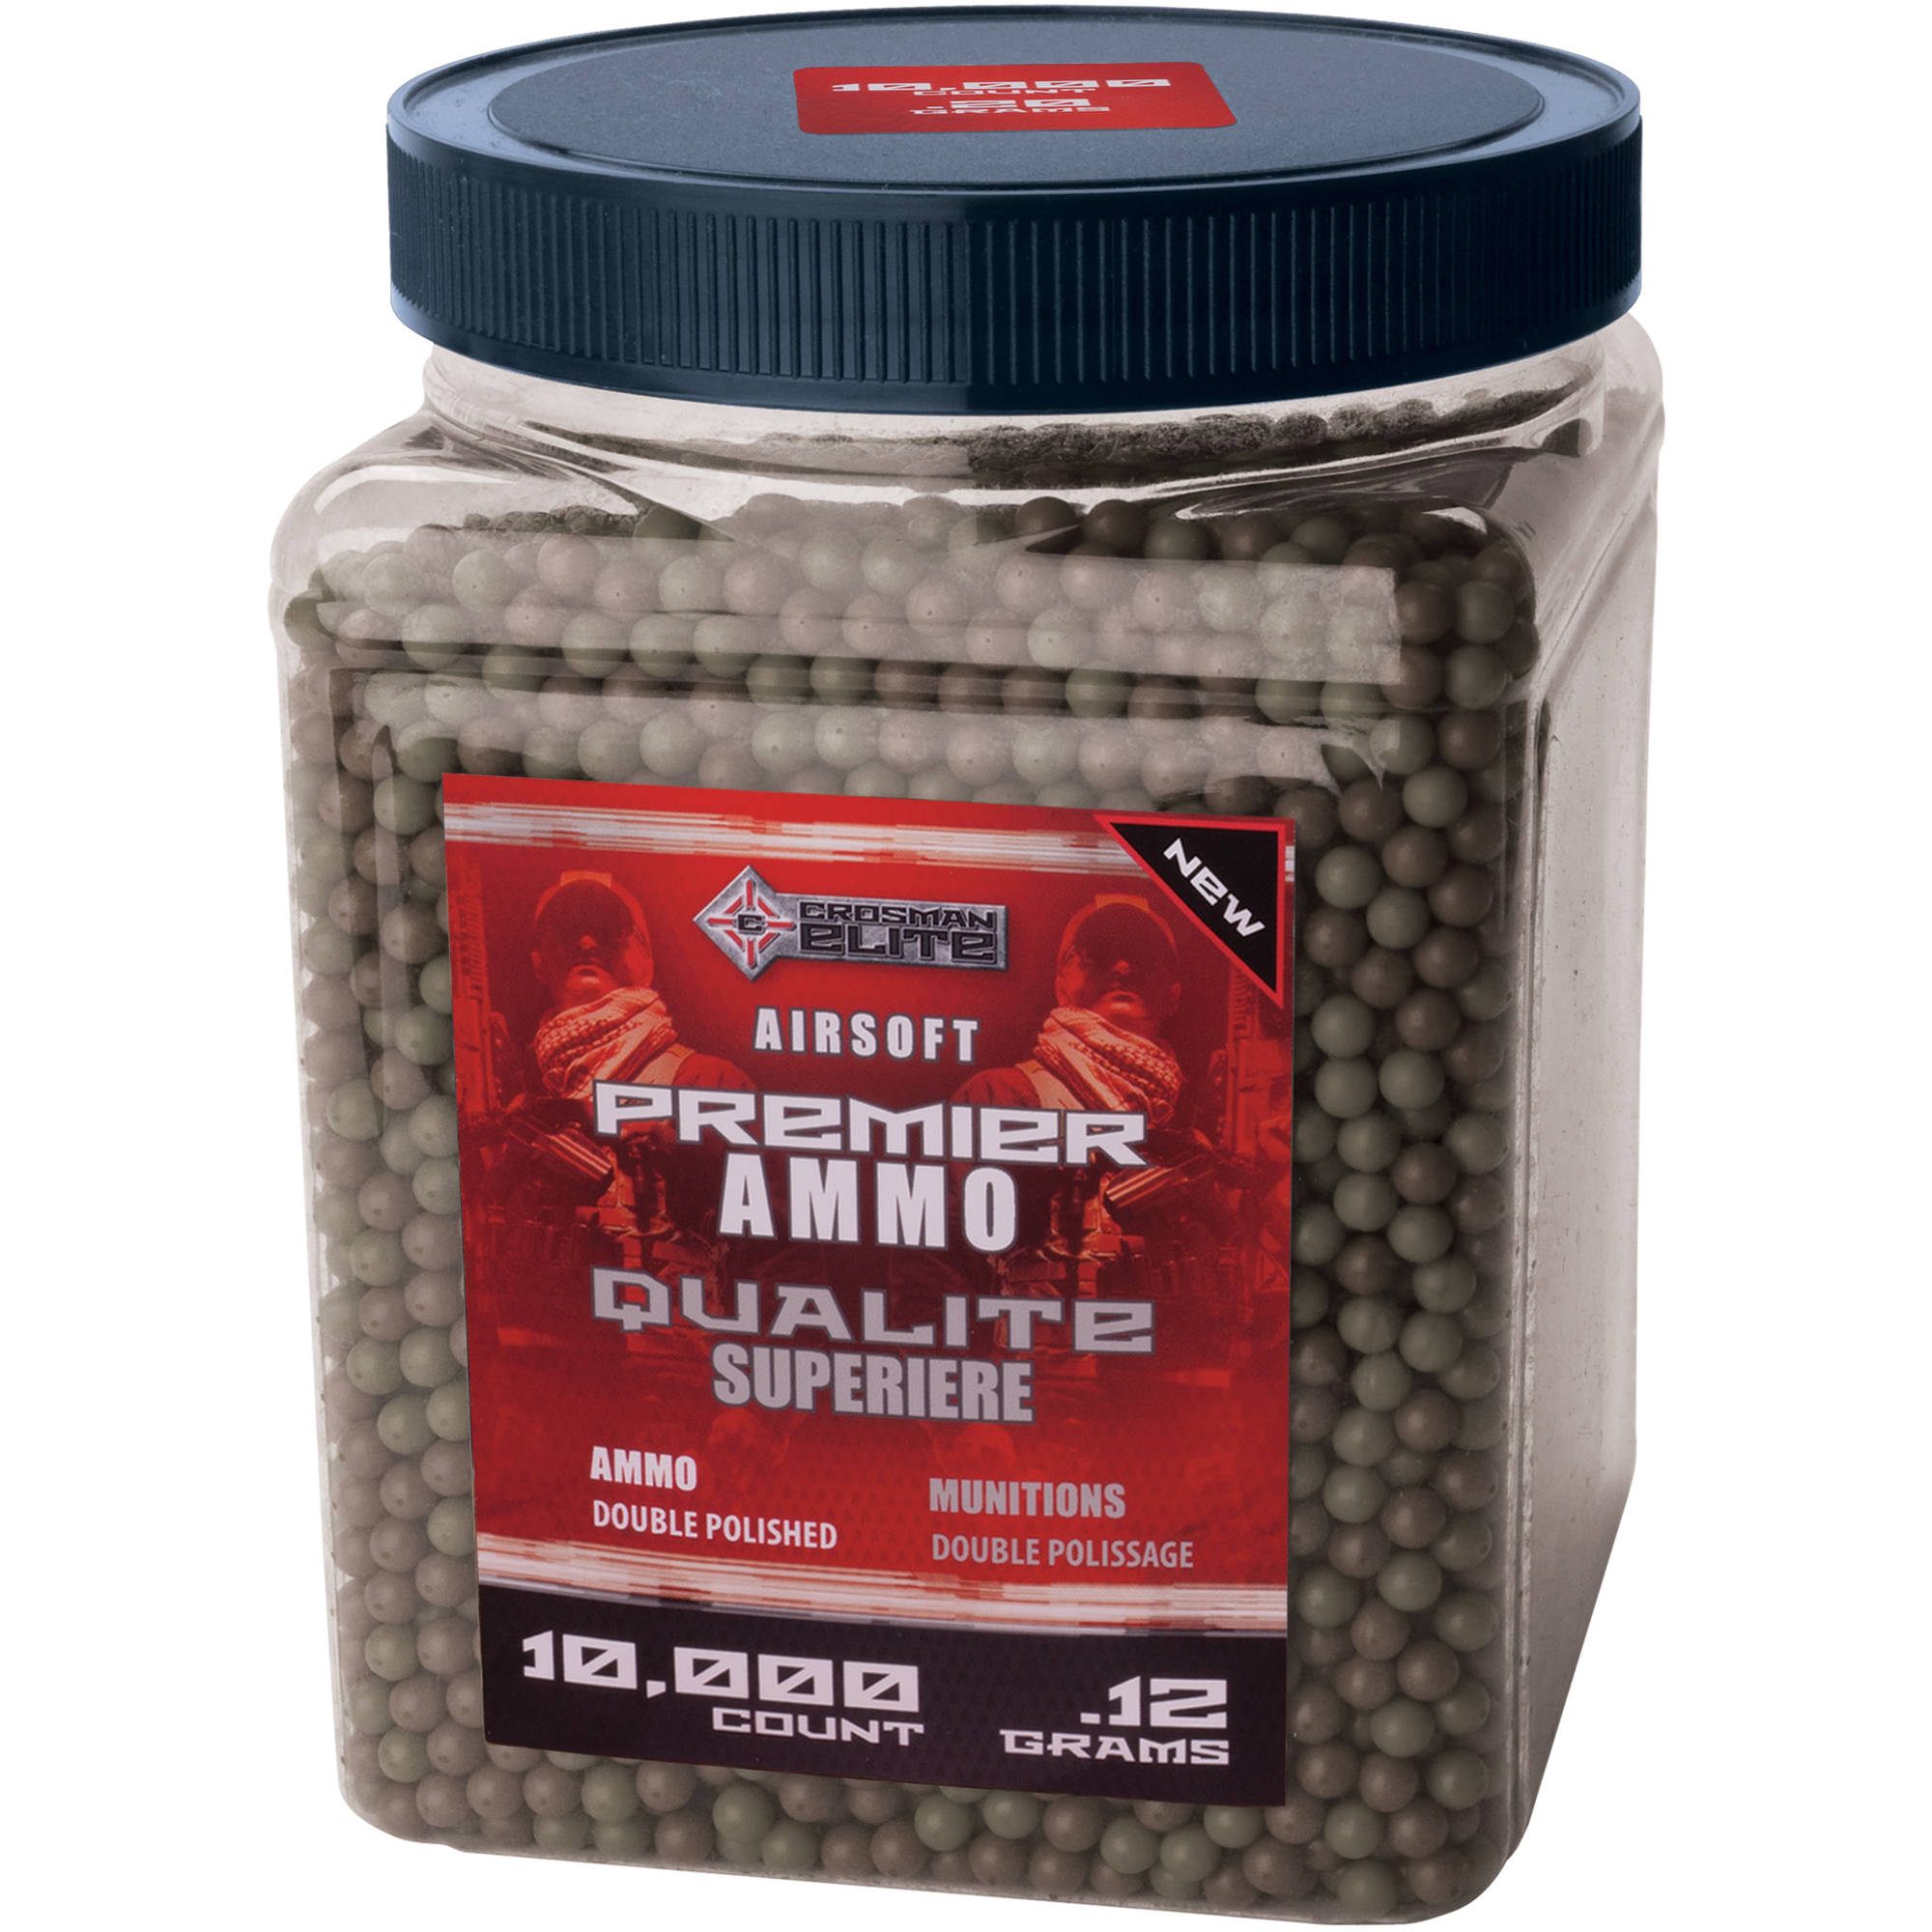 Crosman Airsoft Camo Ammo, 10,000ct